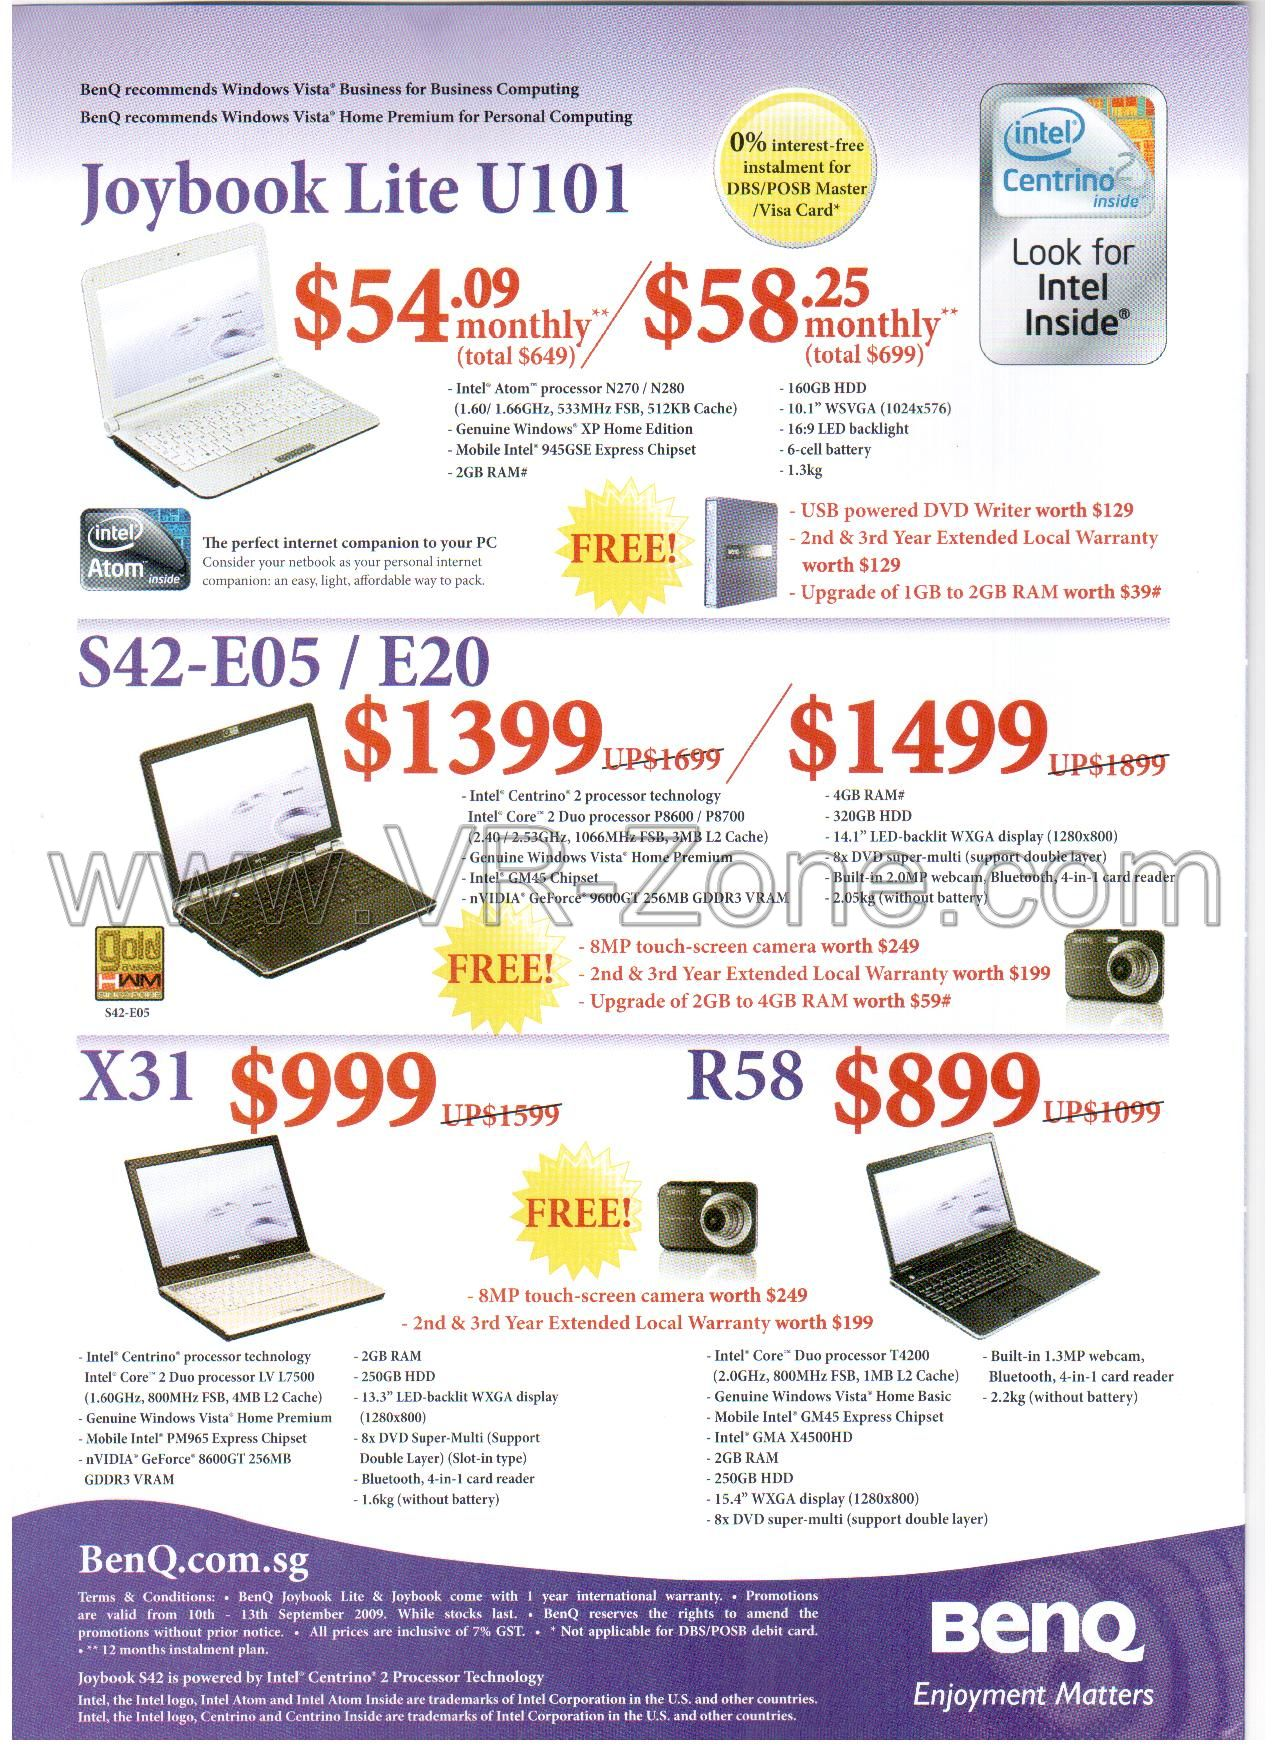 Comex 2009 price list image brochure of BenQ Netbook Joybook Lite U101 S42 E05 X31